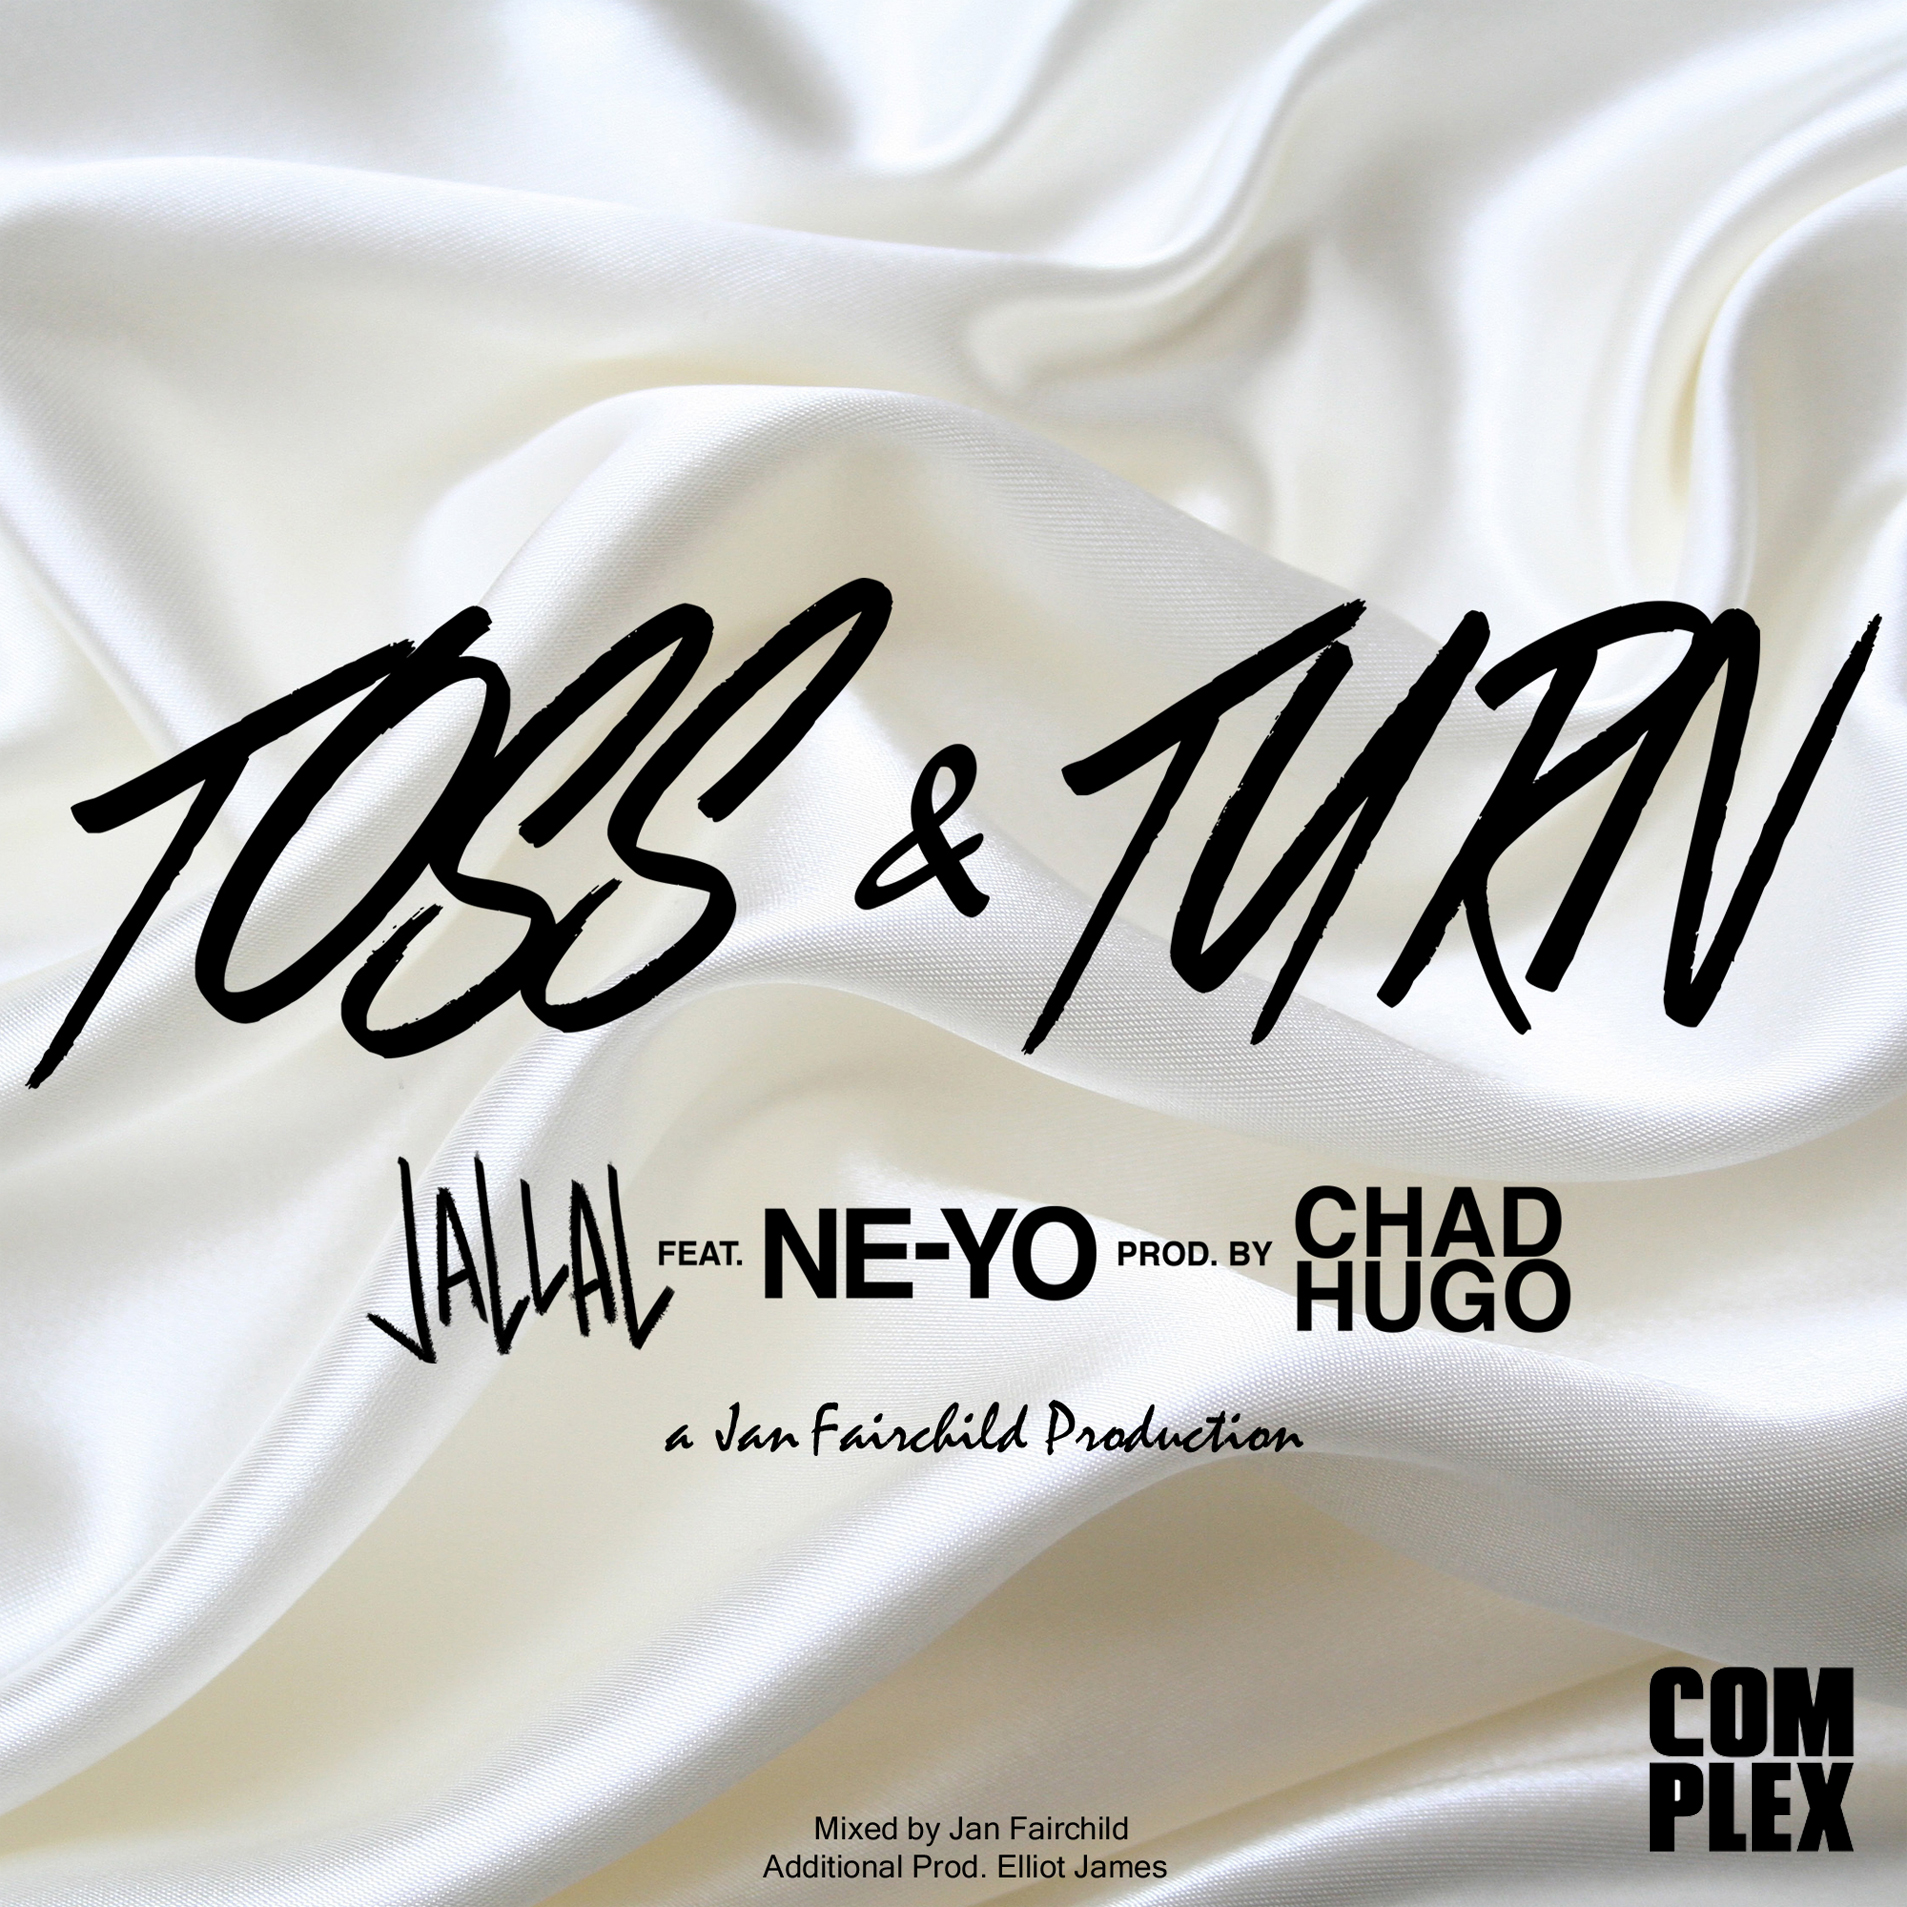 Jallal feat. Ne-Yo Toss and Turn Produced by Chad Hugo Complex .jpg